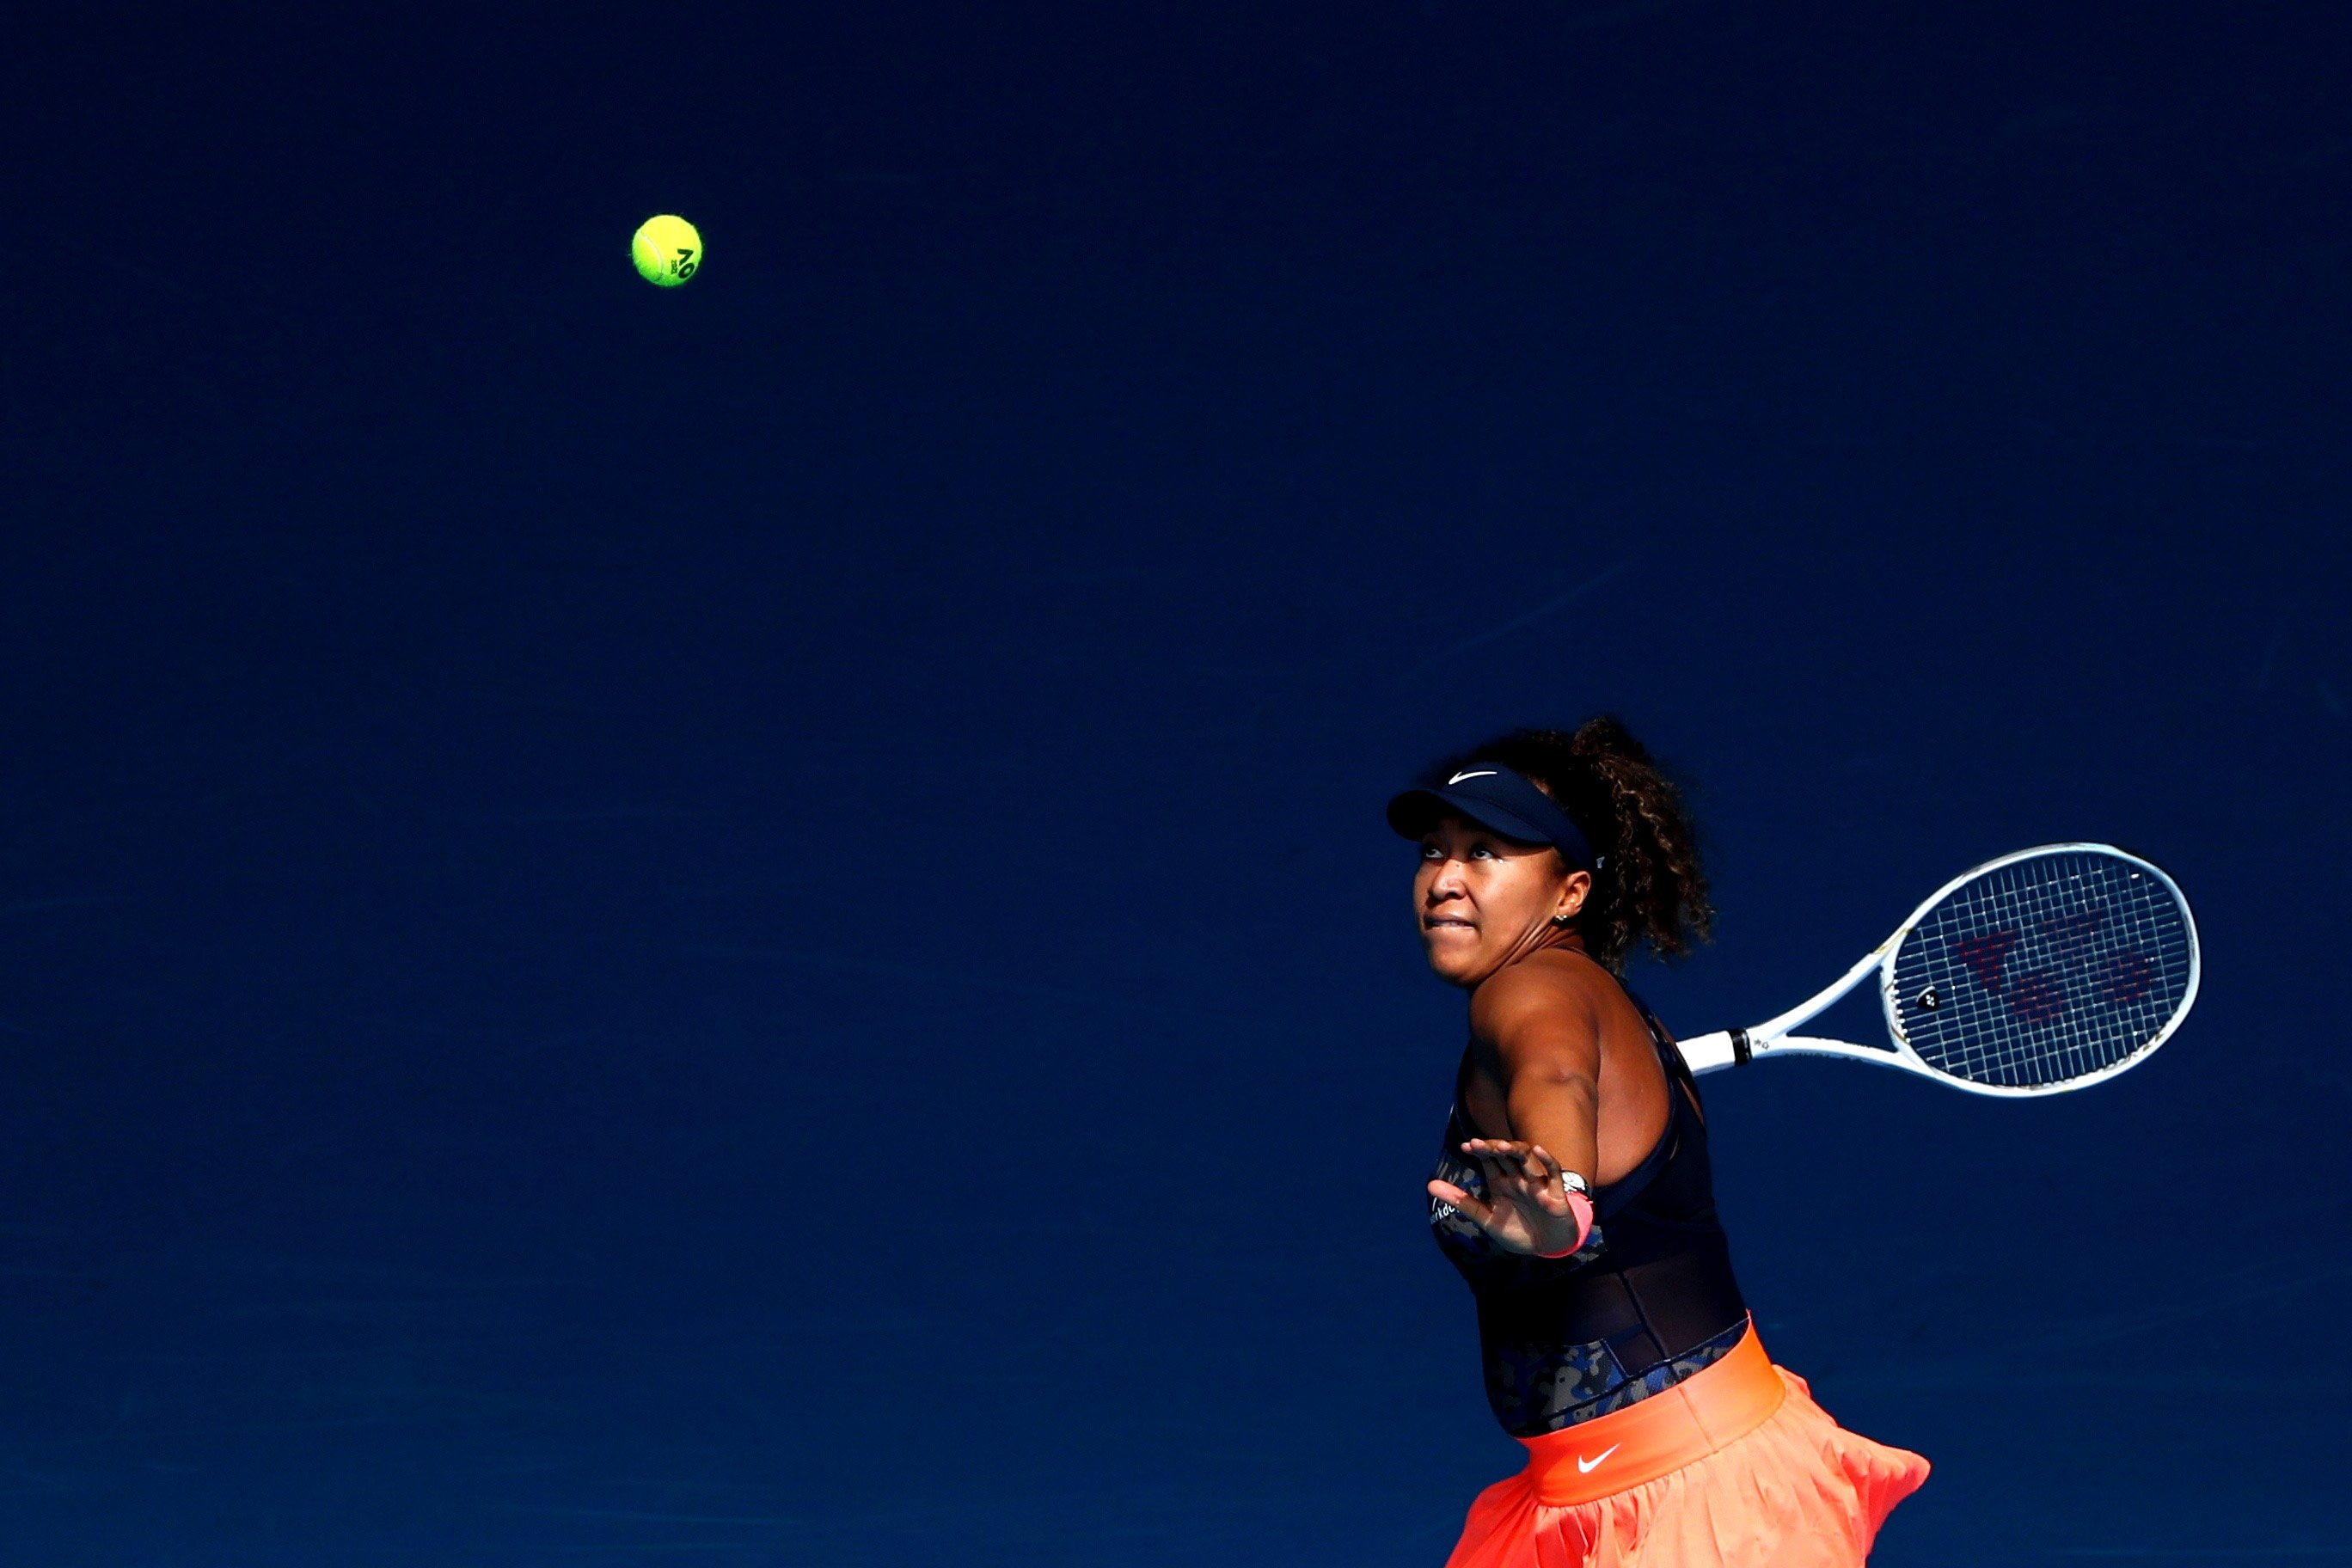 Japan's Naomi Osaka in action against Taiwan's Su-Wei Hsieh in the Australian Open quarterfinal in Melbourne, Australia, Feb. 16, 2021. (Reuters Photo)